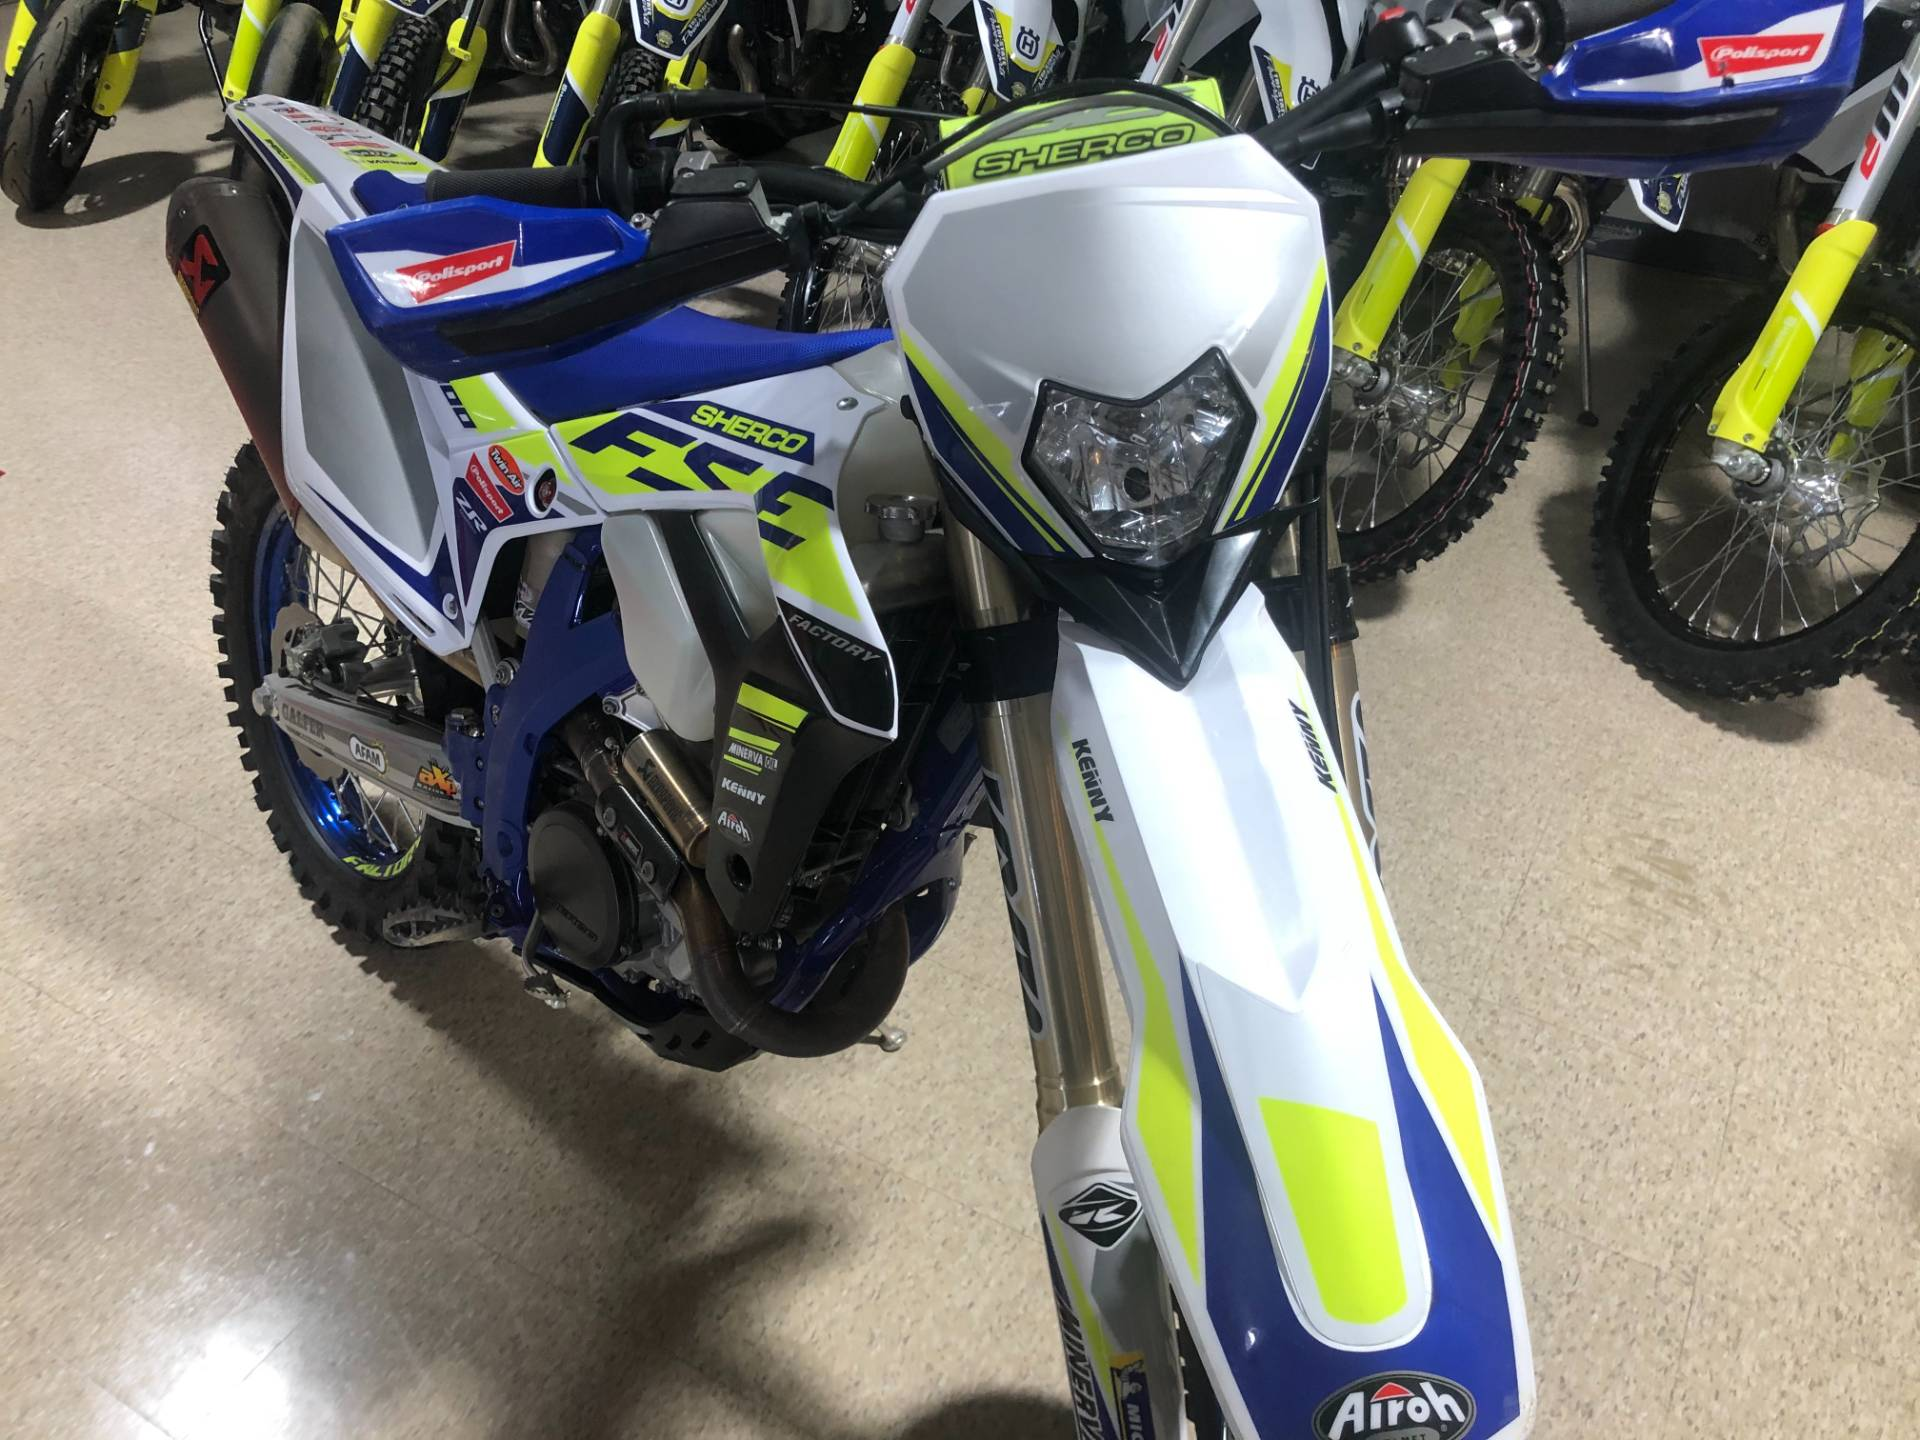 2020 Sherco 300 SEF Factory 4T in Slovan, Pennsylvania - Photo 6